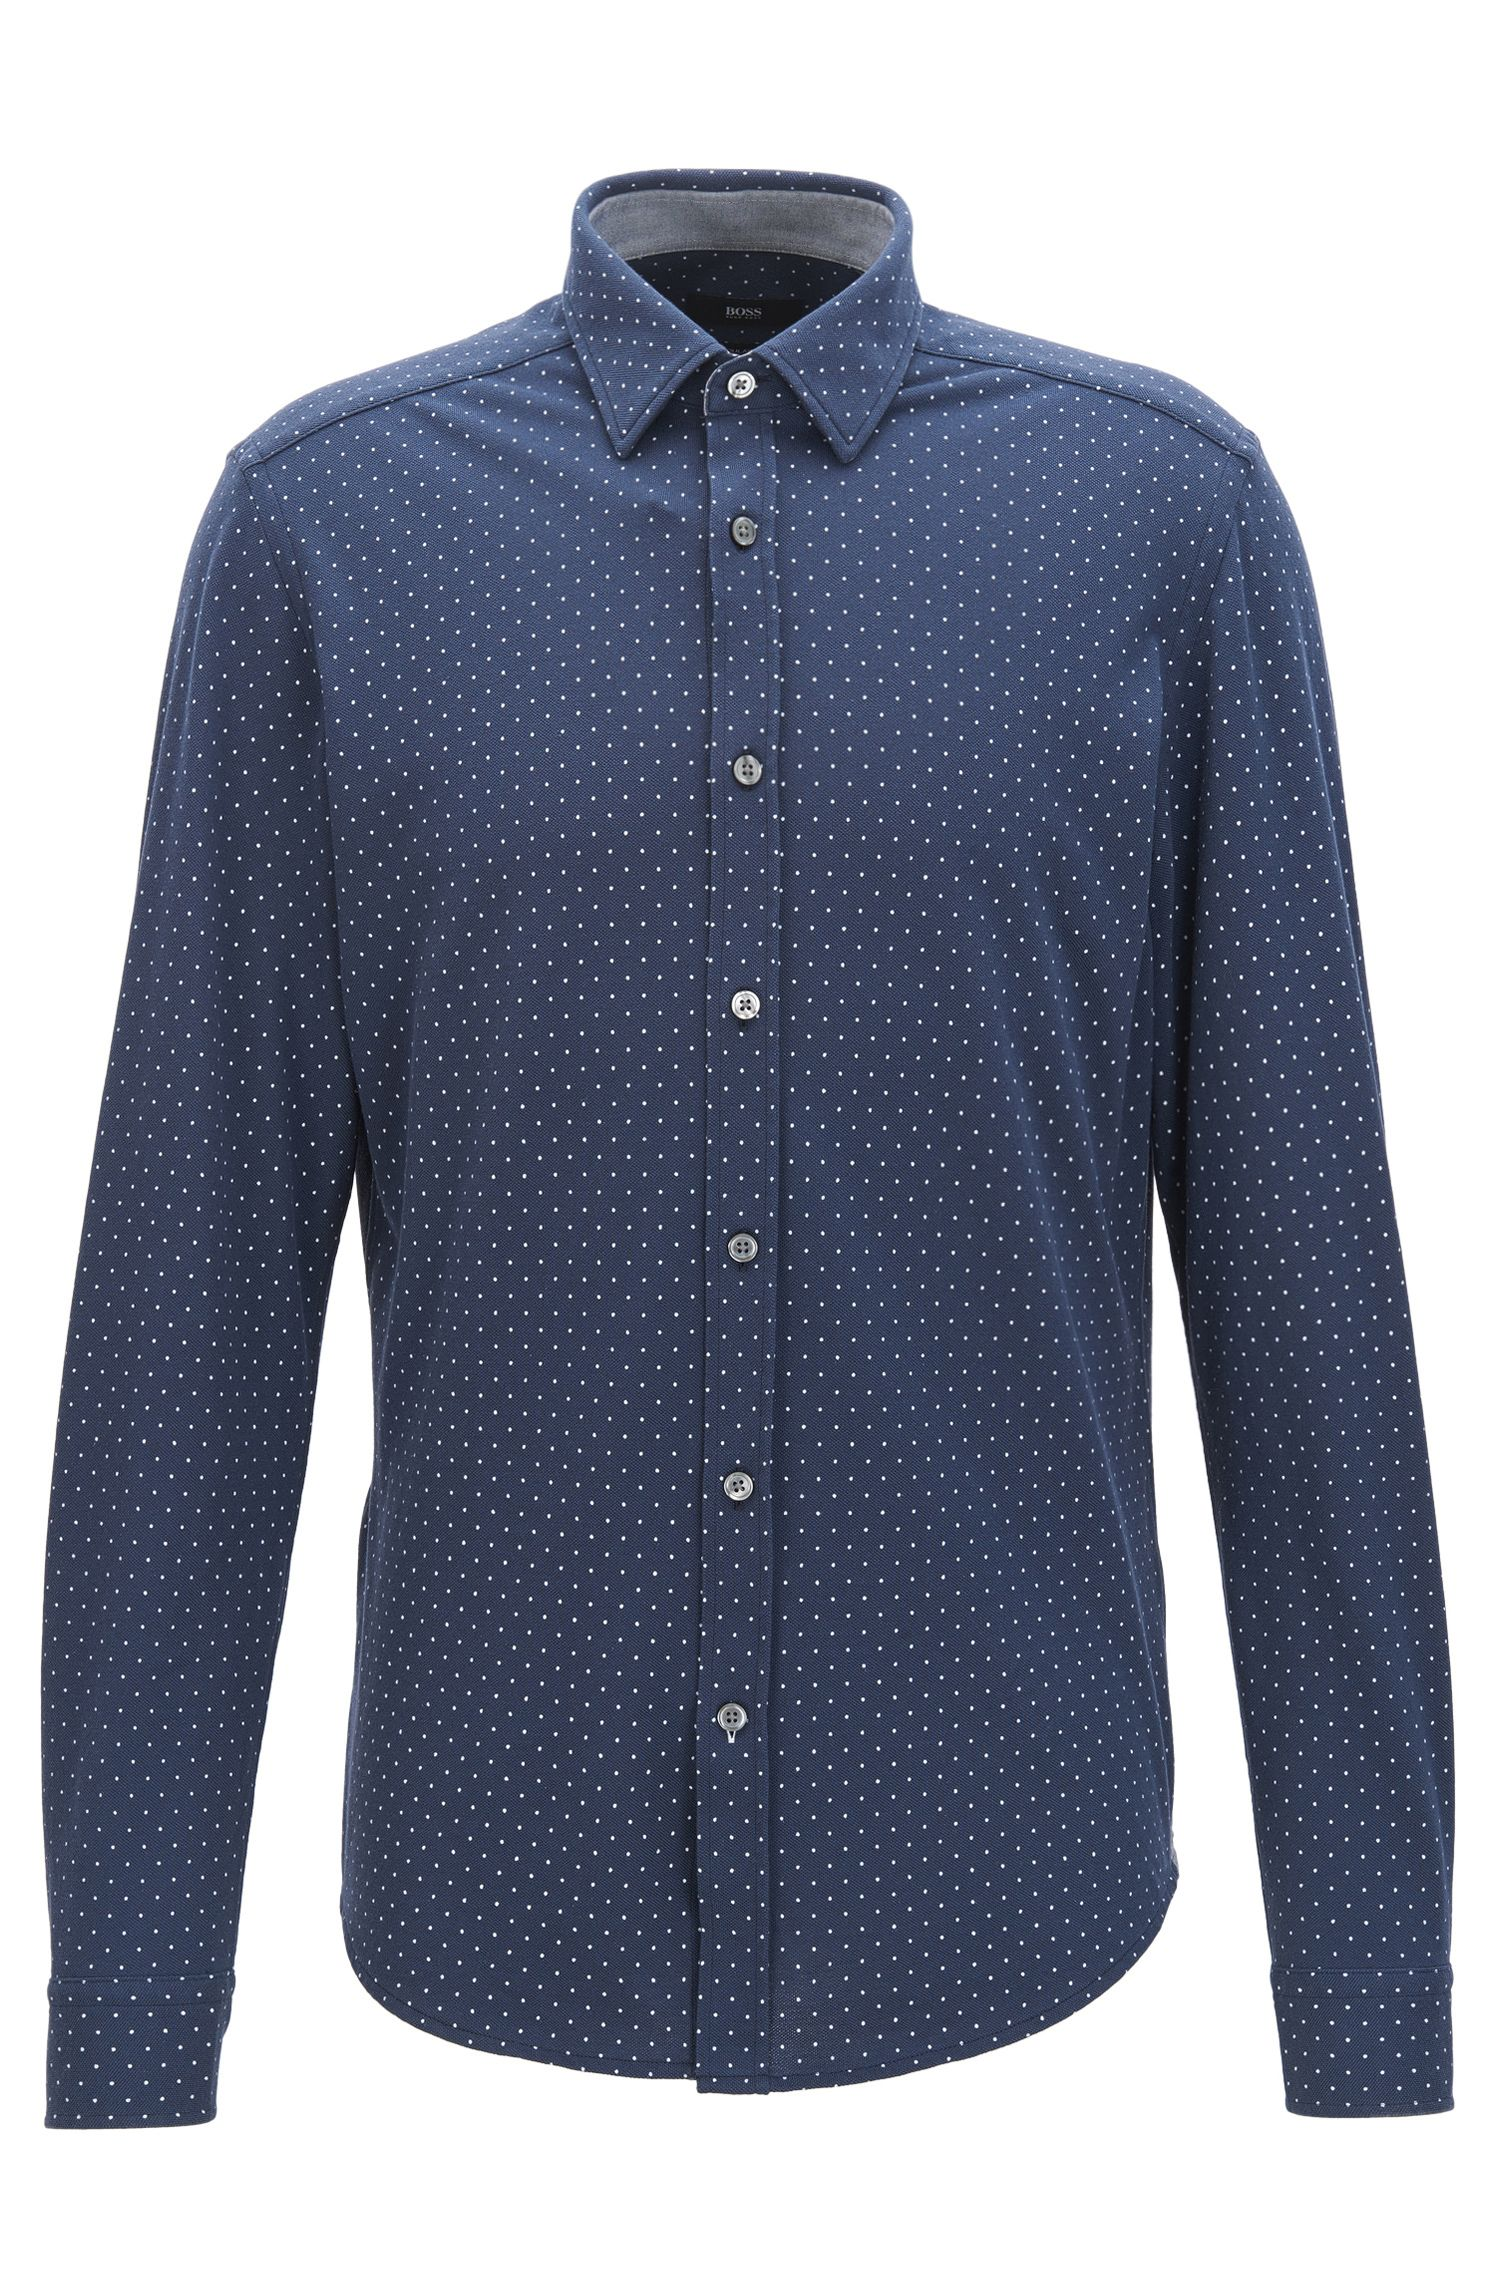 Polka-dot cotton shirt in a regular fit